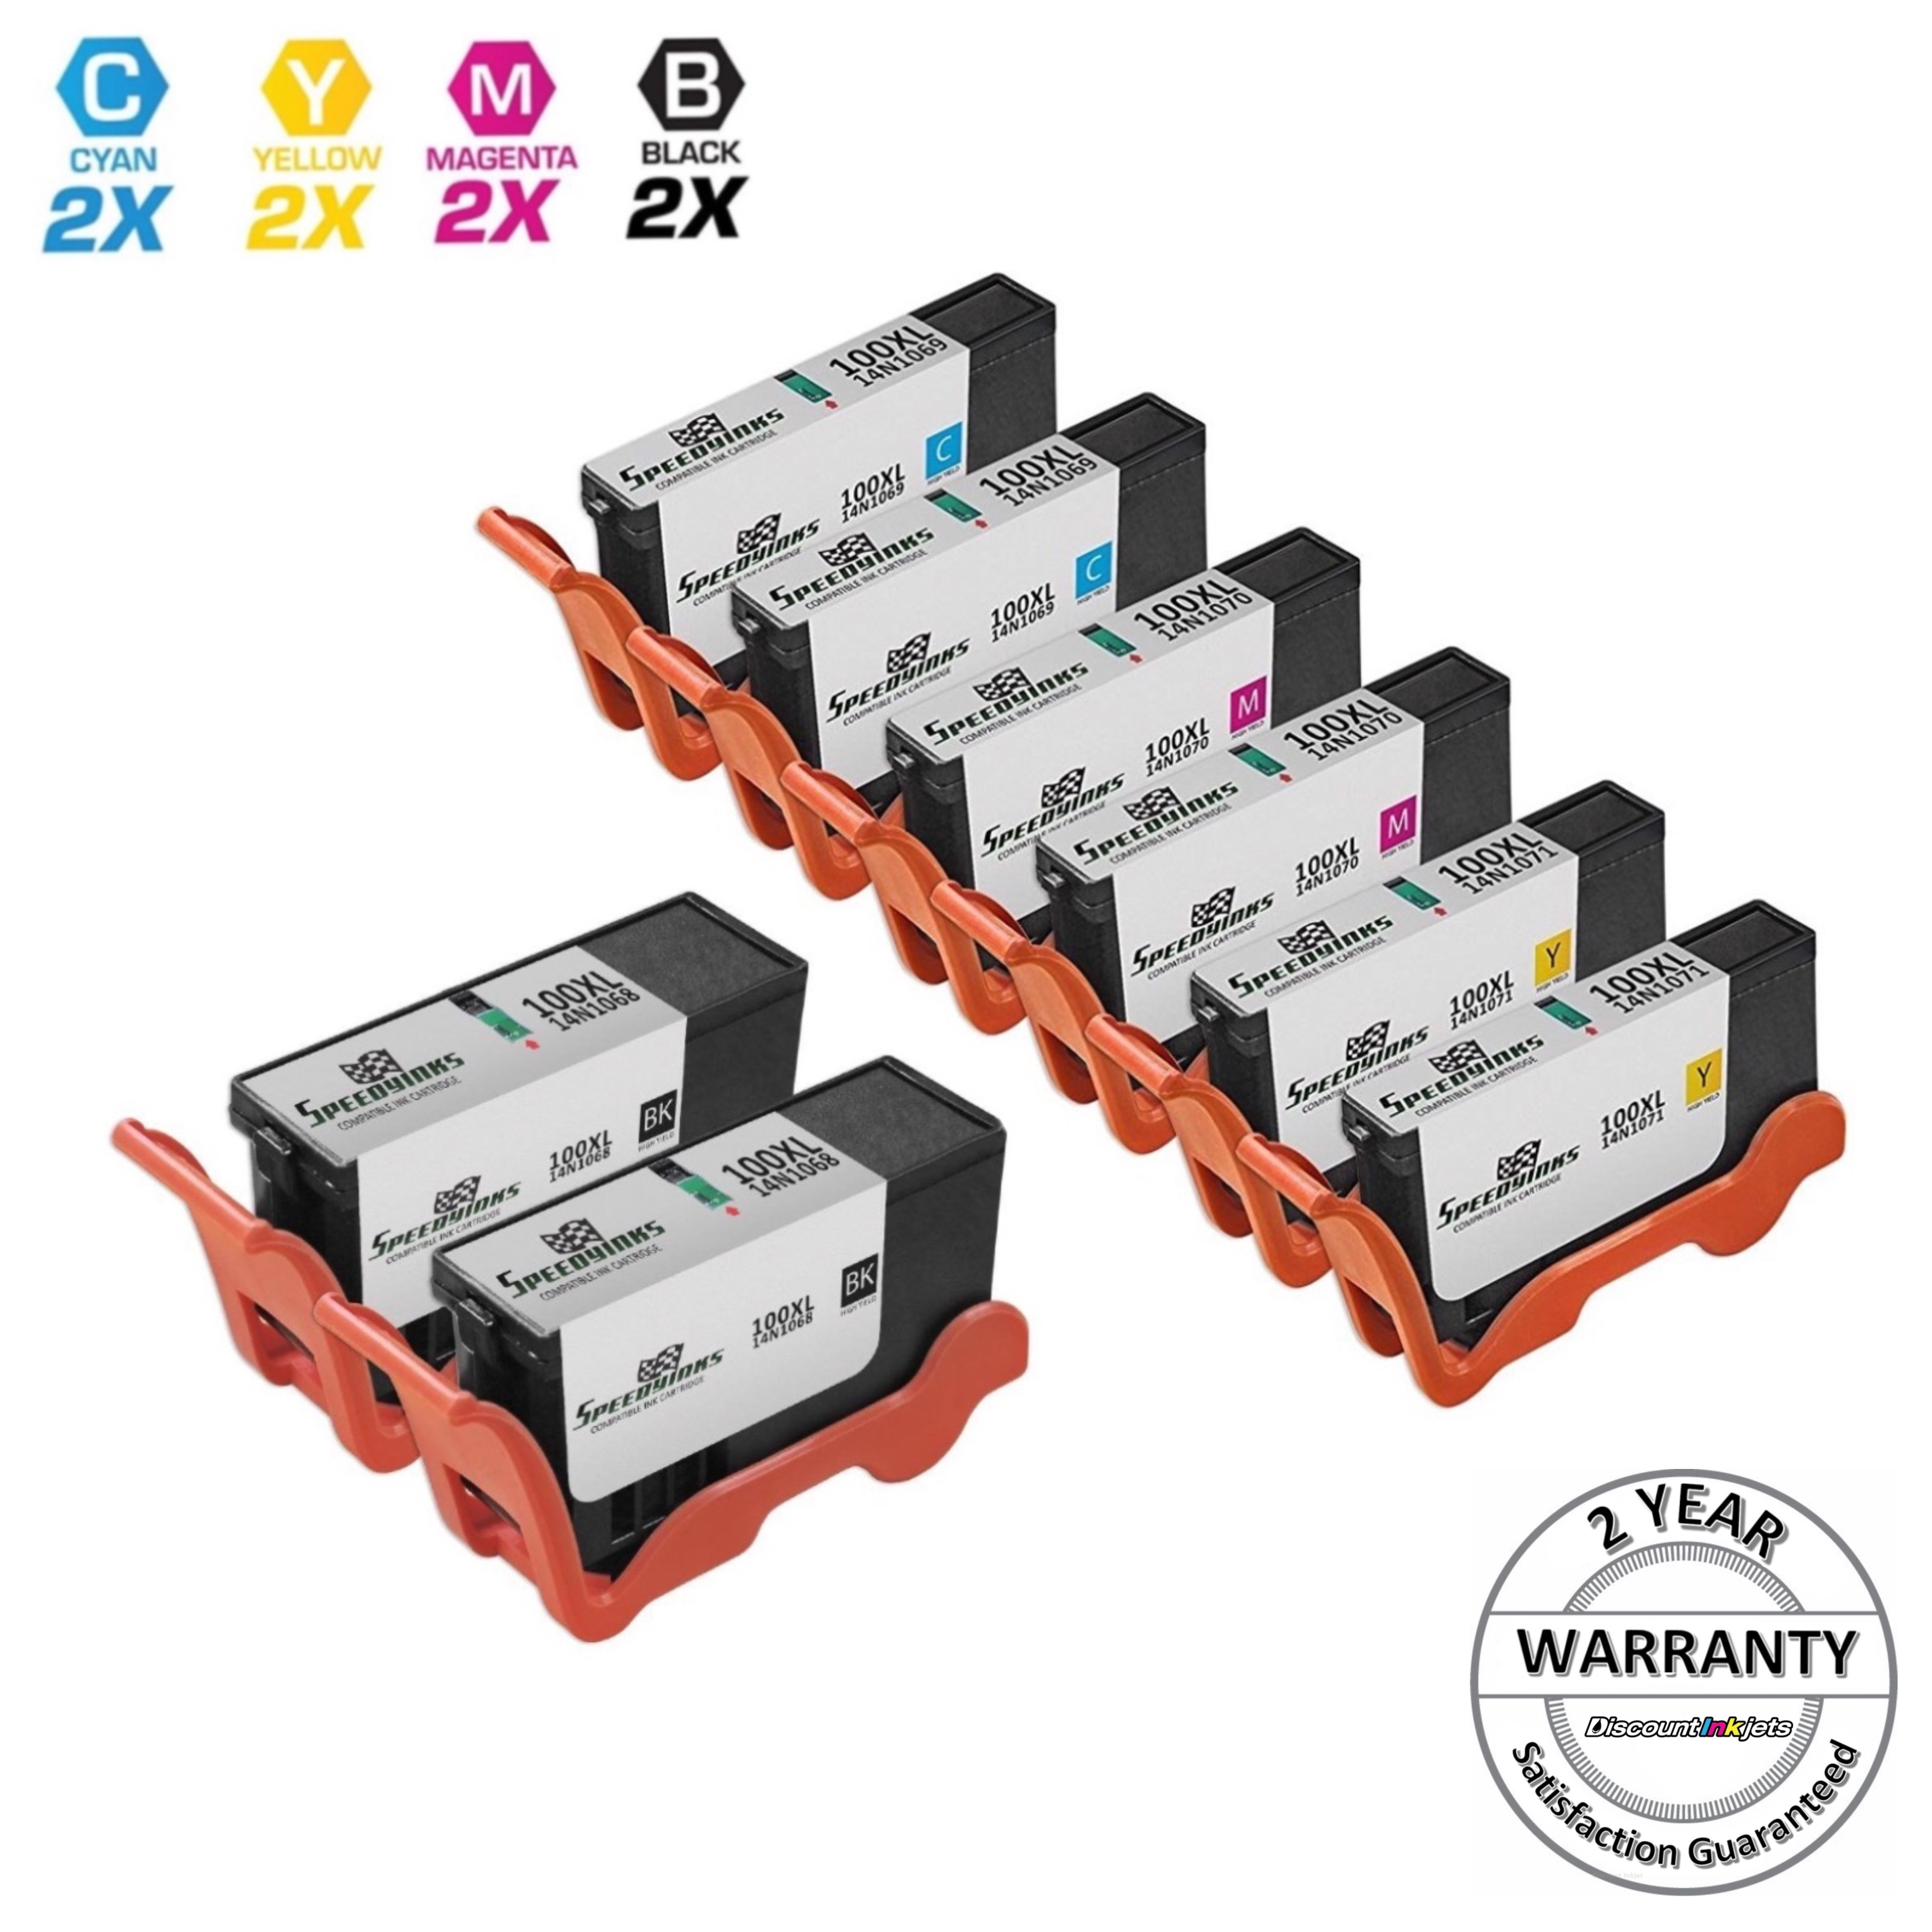 10 Pk 100XL Ink Cartridge H Yield For Lexmark S301 S305 S405 S505 S605 S815 S816